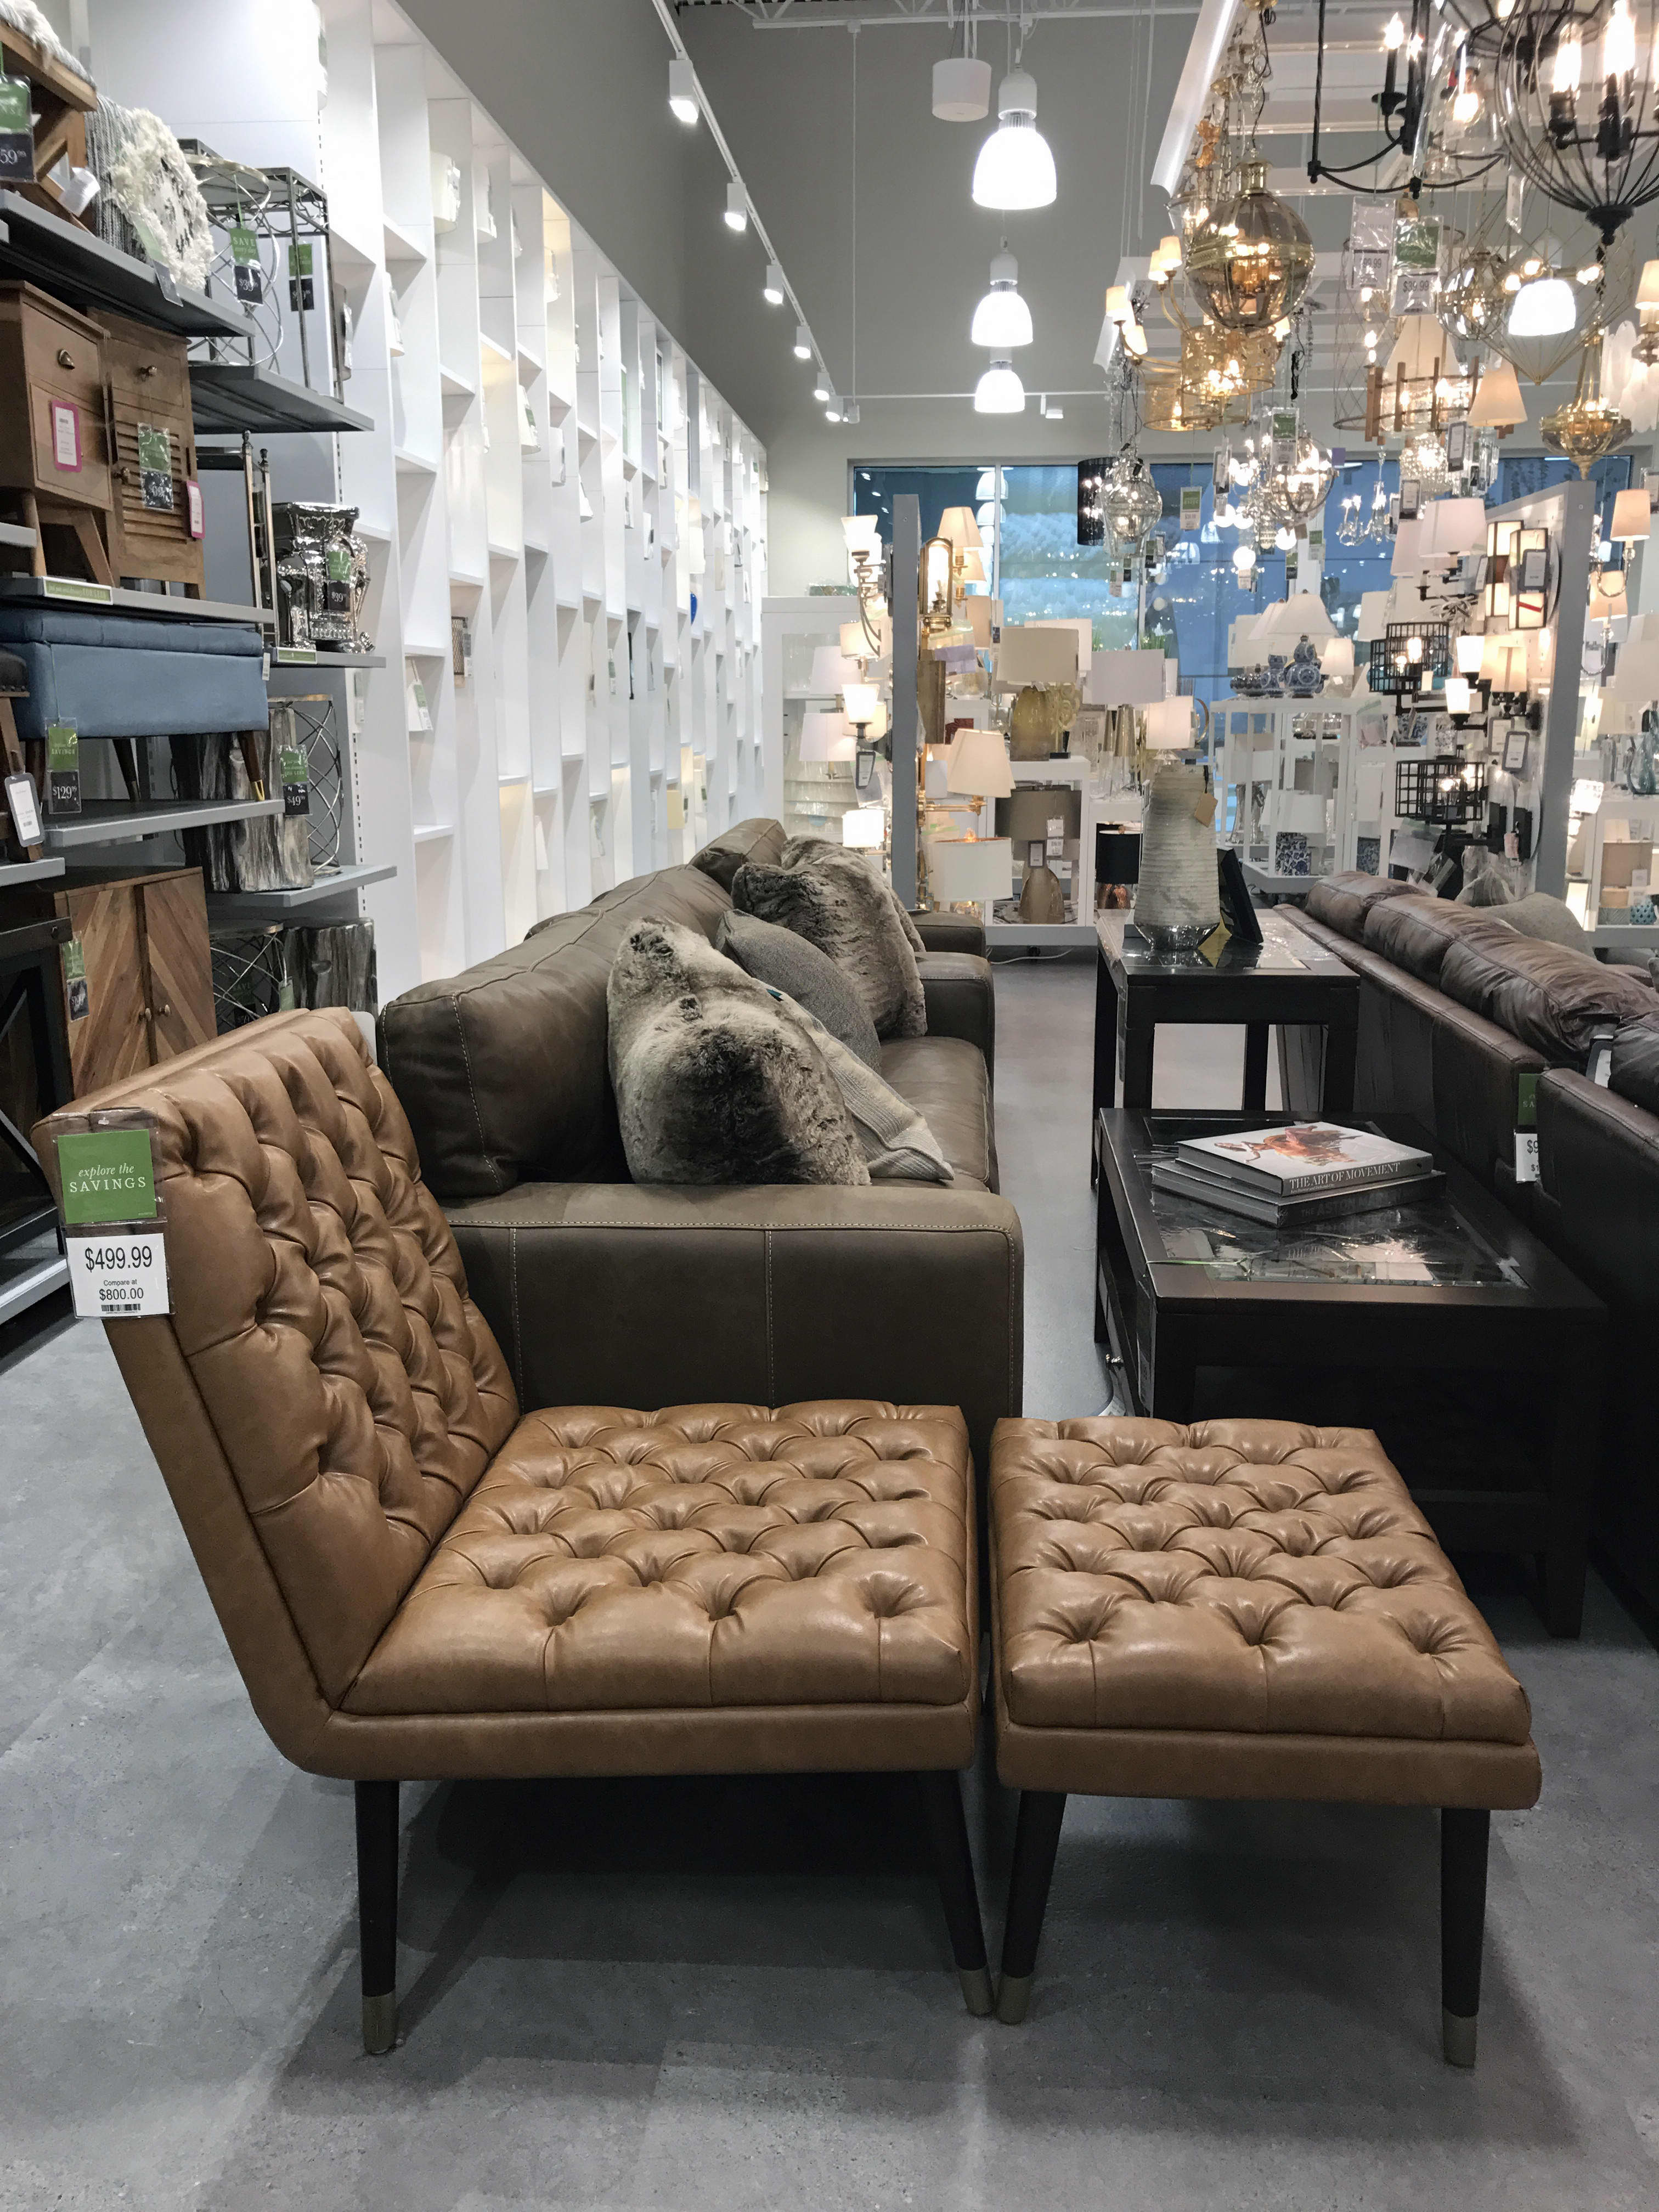 We Visited The First Homesense Store In The Us We Re Taking You On